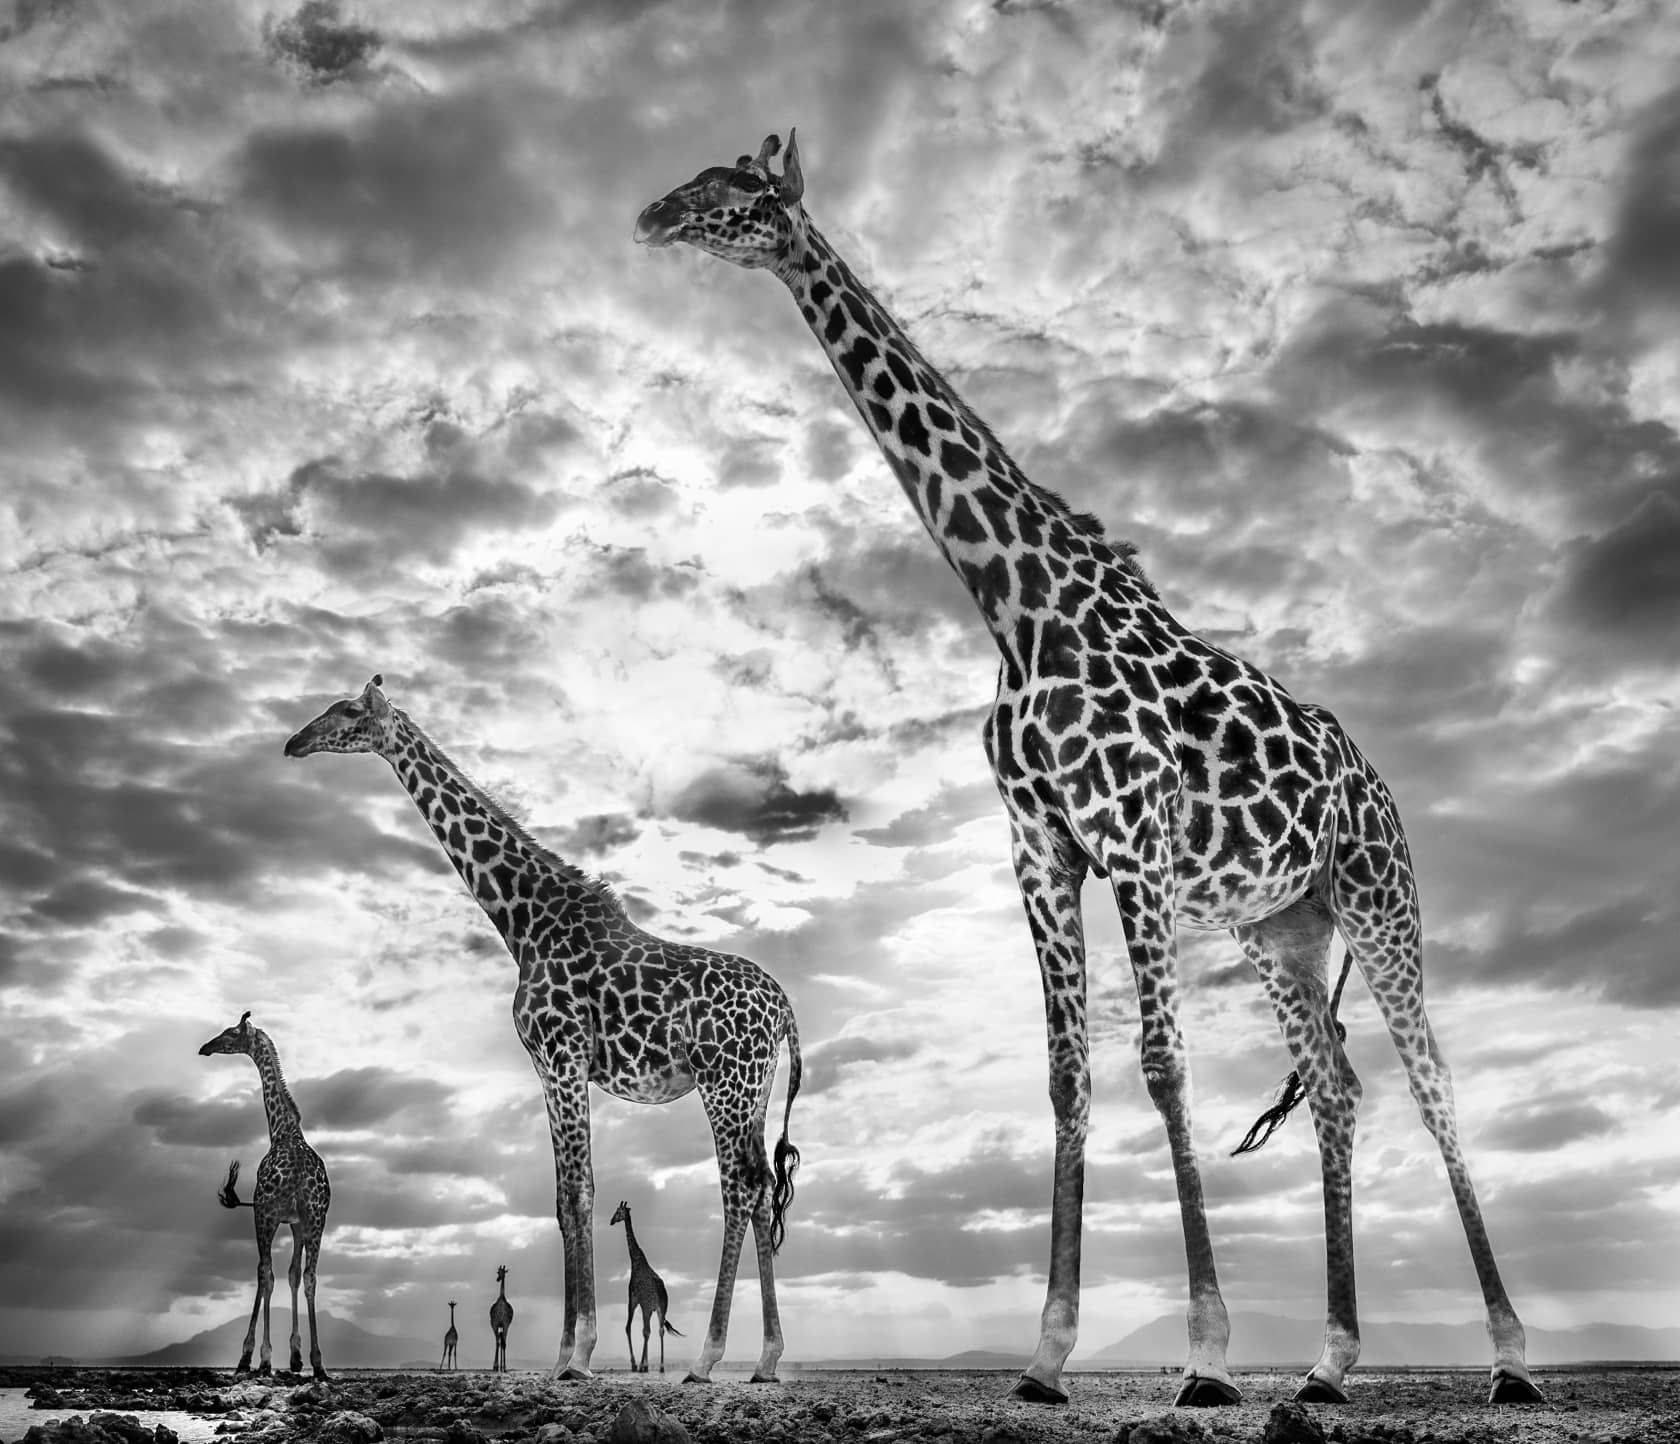 David Yarrow, Keeping Up With the Crouches, 2019